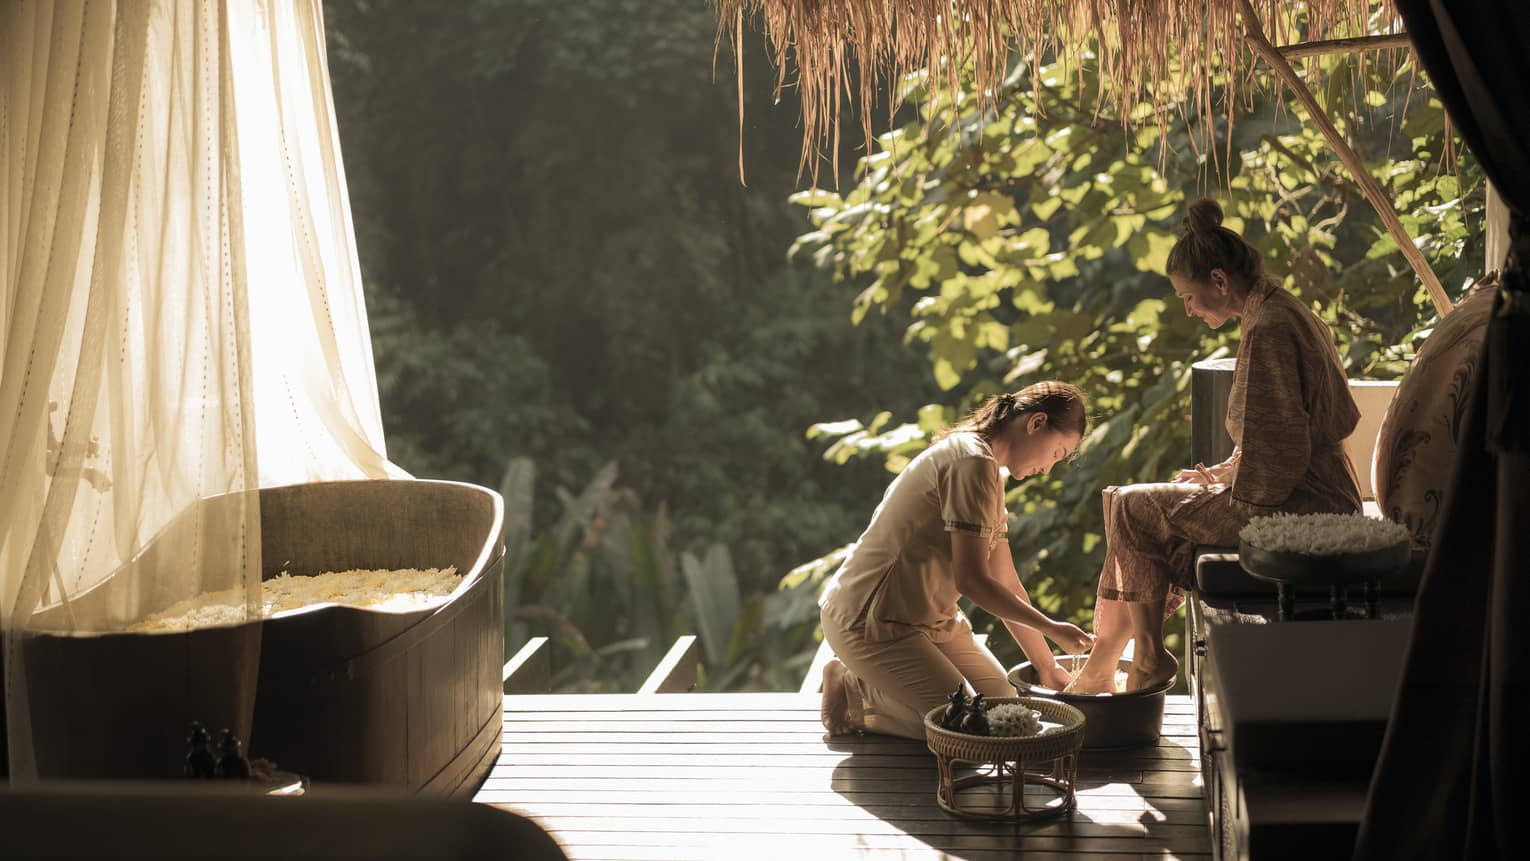 Spa technician kneeling, rinsing feet of woman seated, wearing spa robe under thatched roof